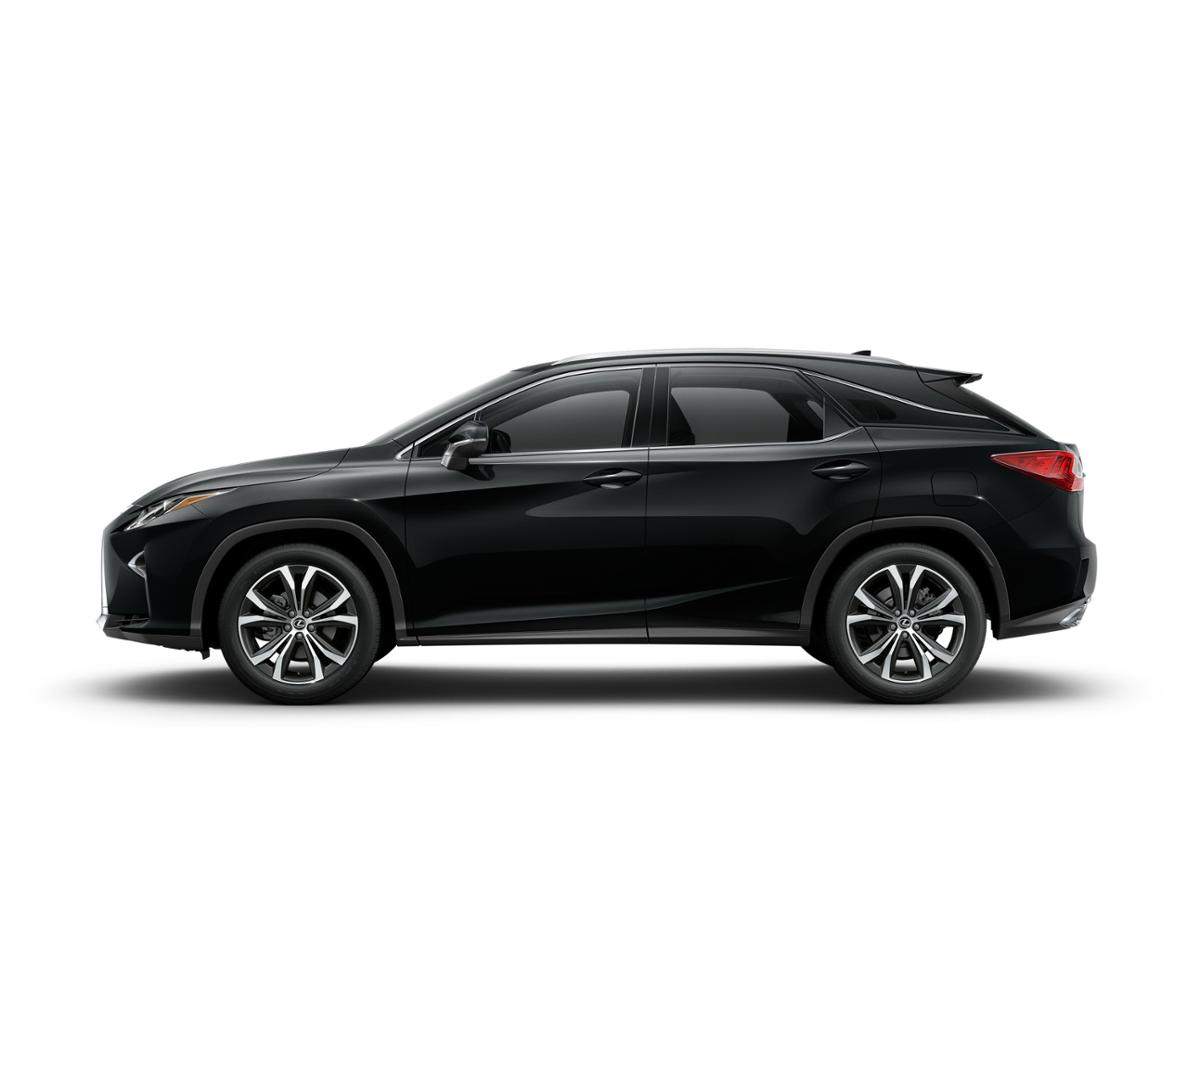 2018 lexus rx 350 macon ga butler lexus l18336. Black Bedroom Furniture Sets. Home Design Ideas